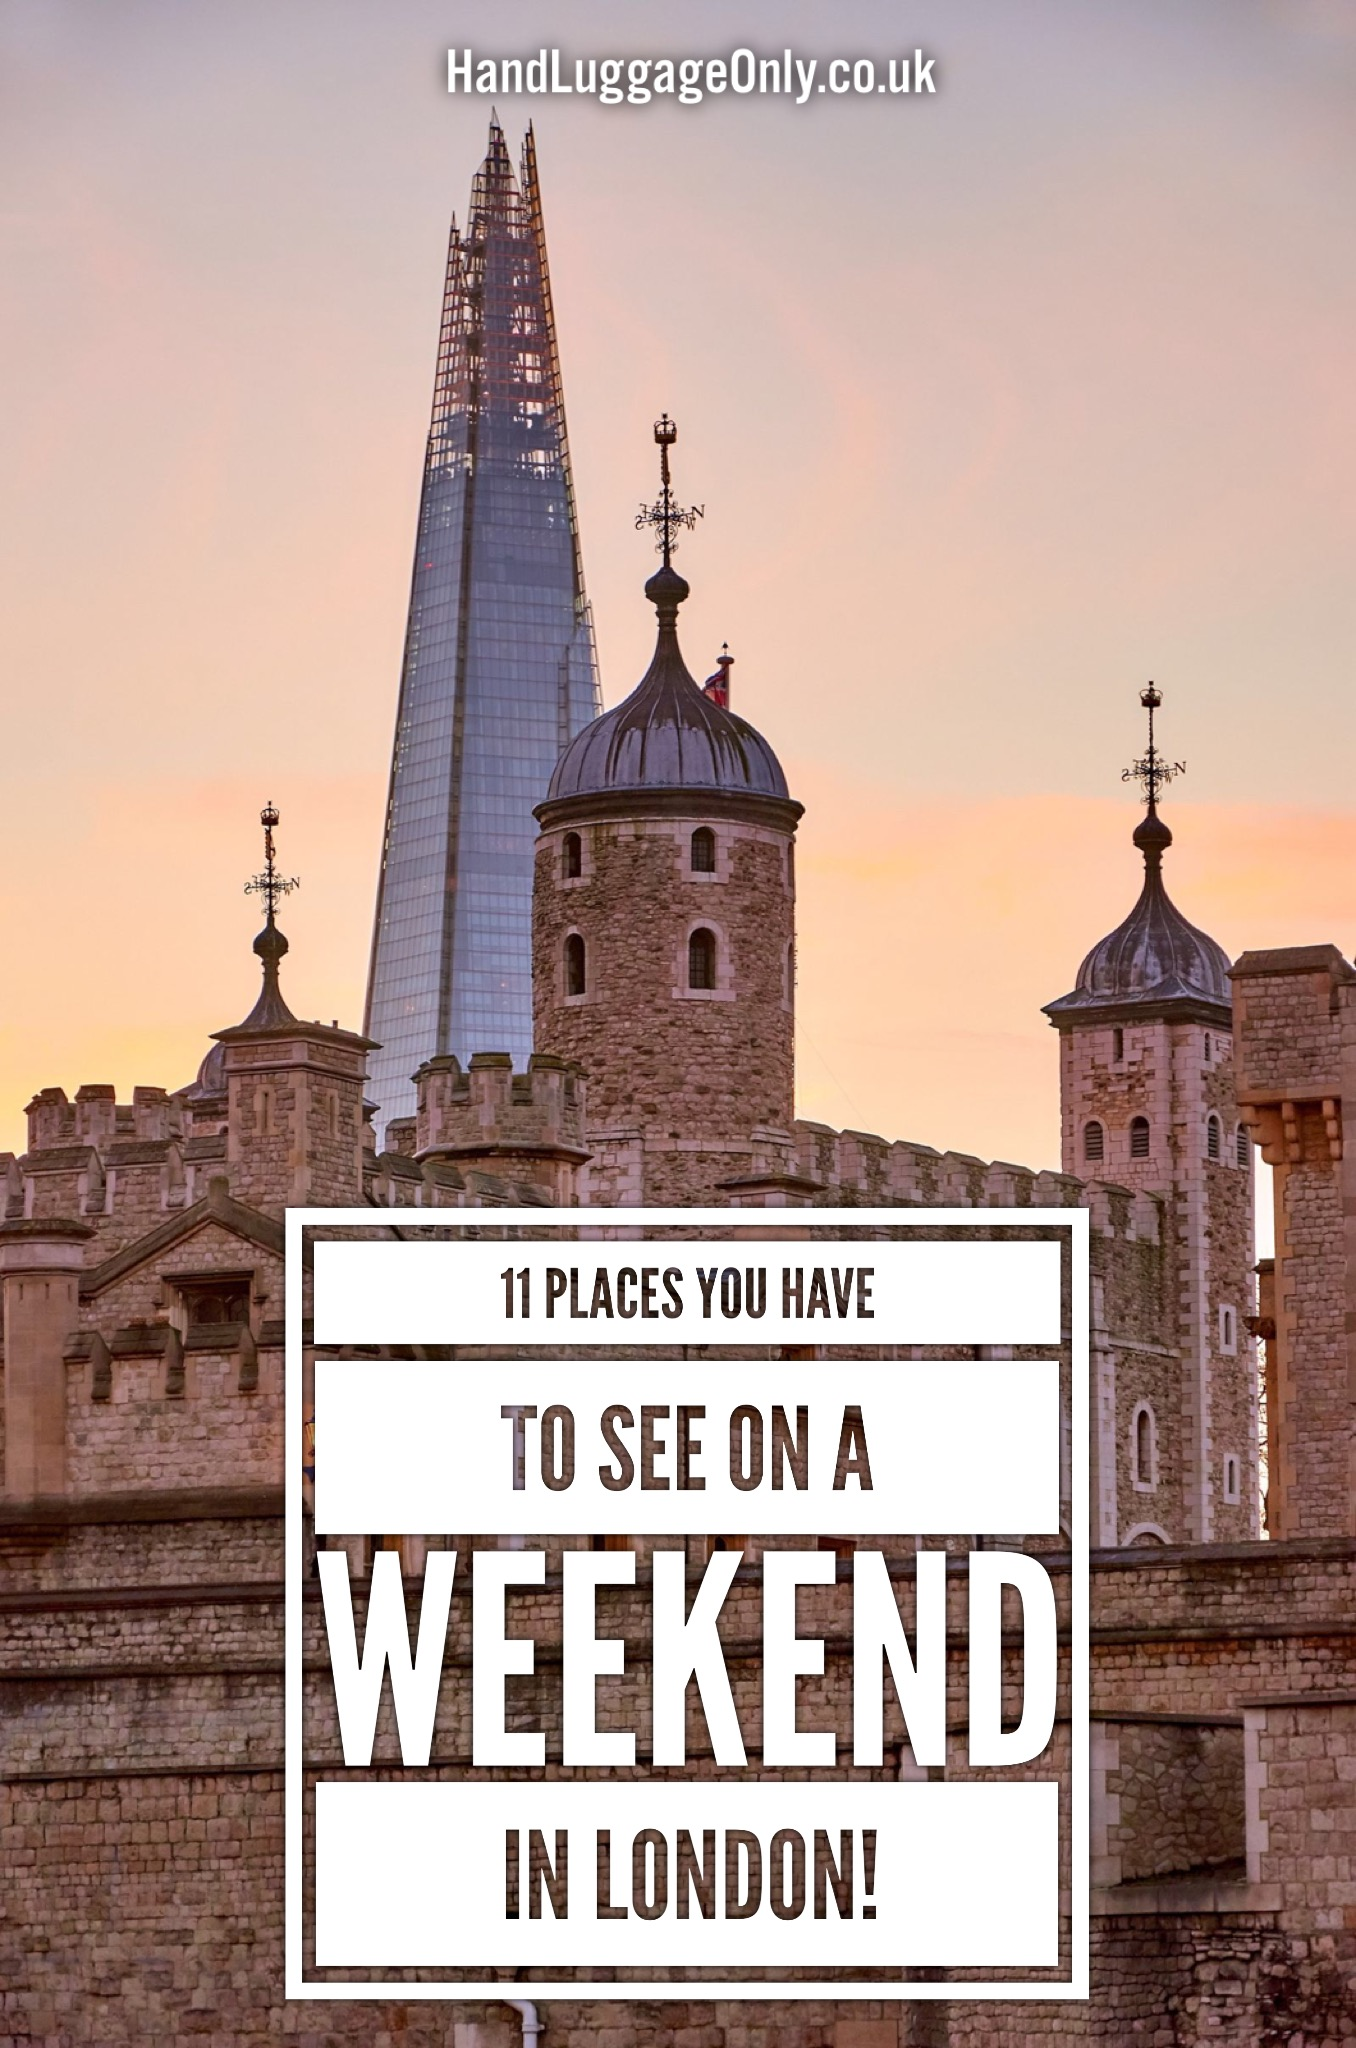 11 Places You Have To See On A Weekend In London (26)